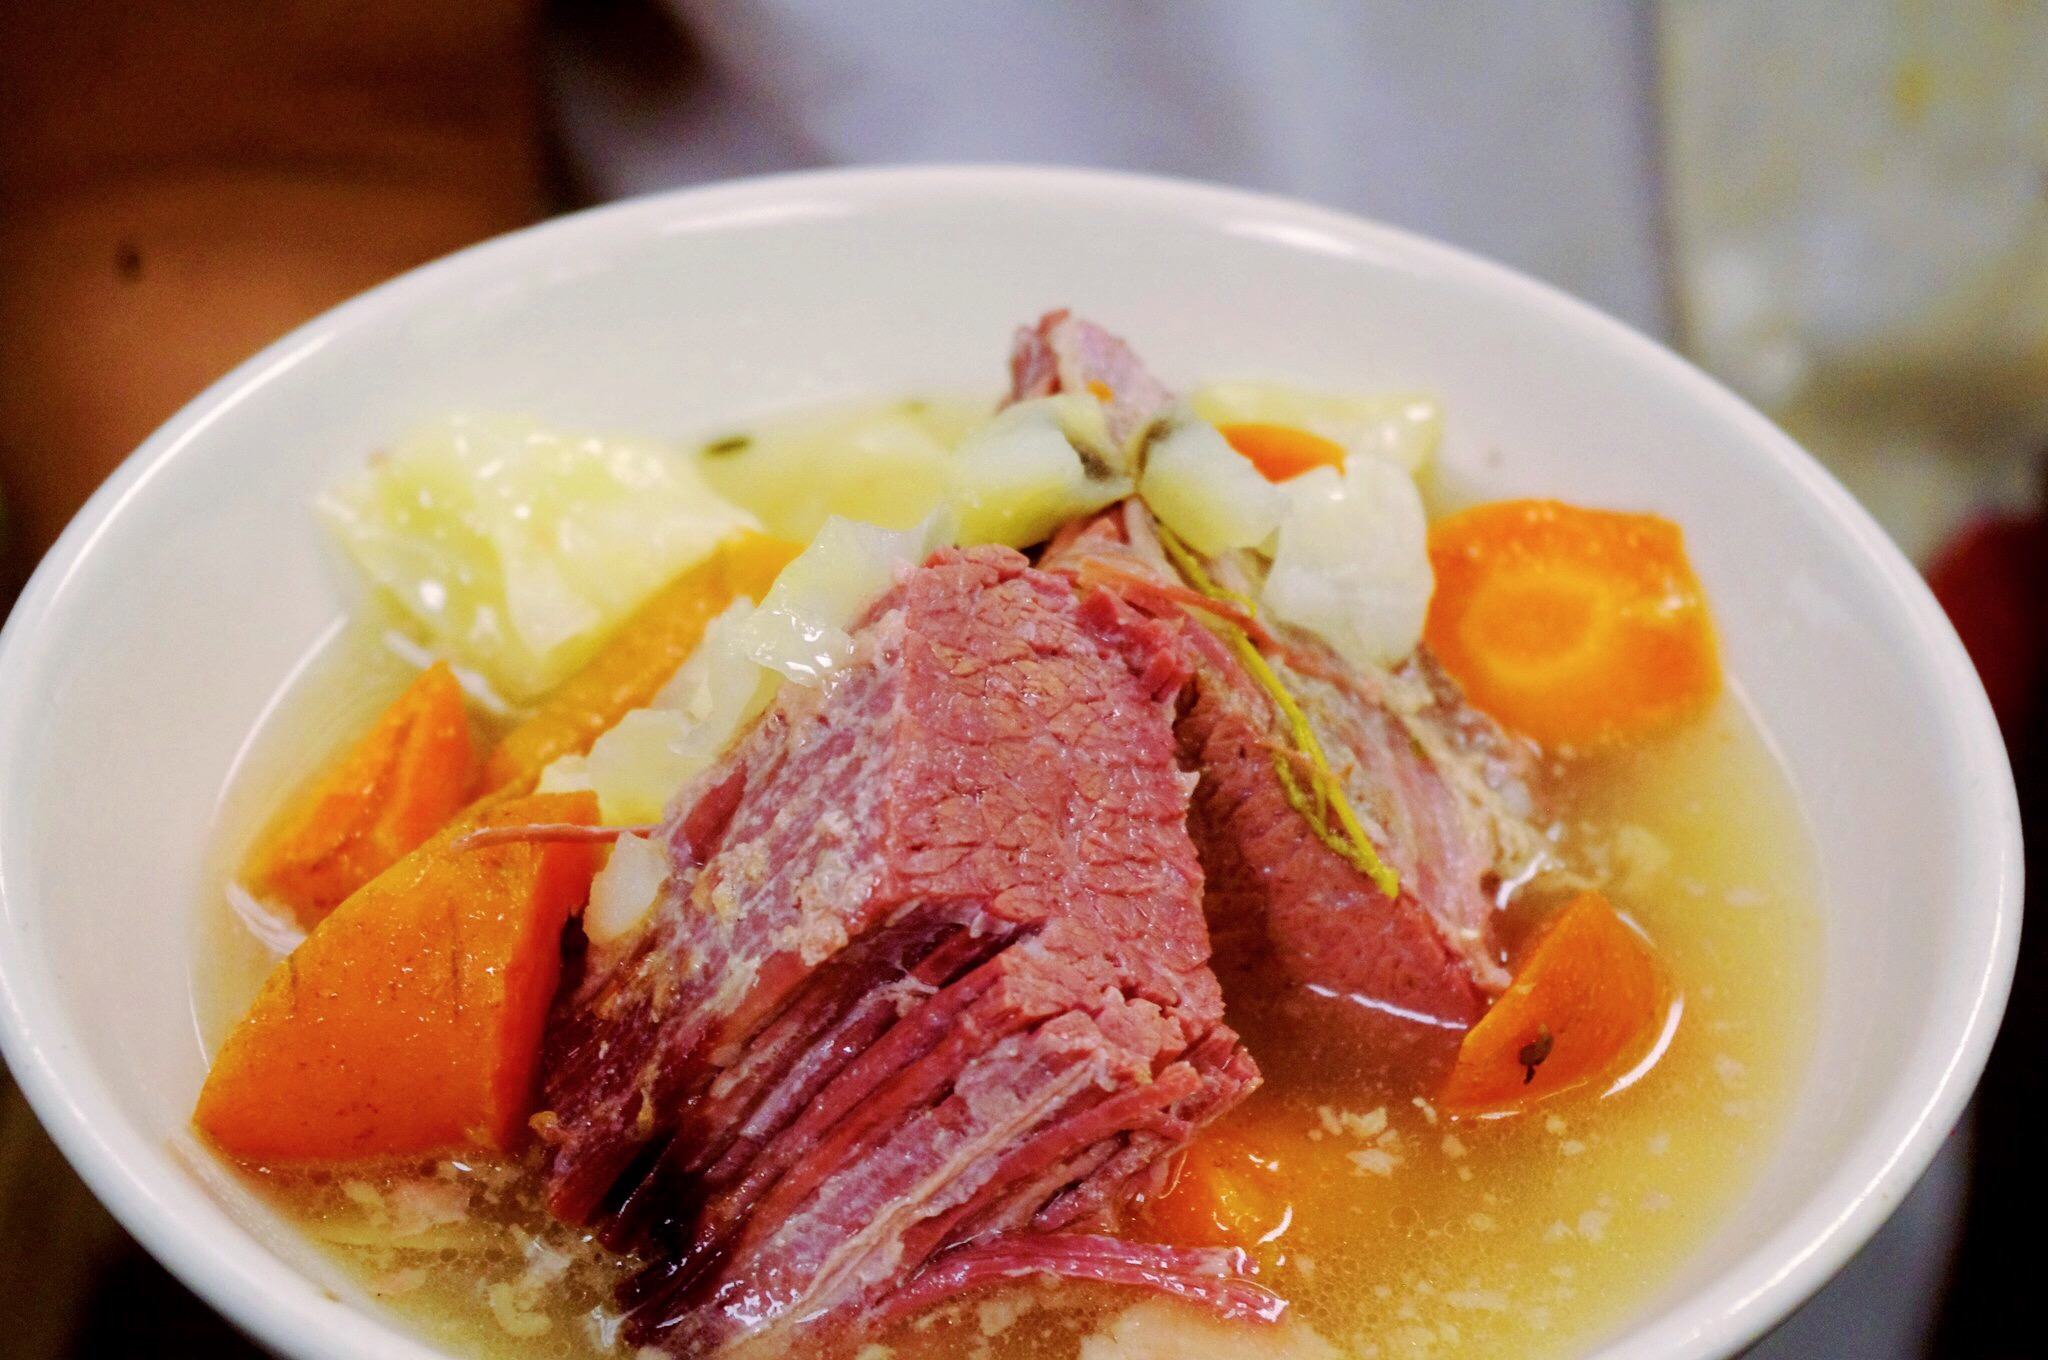 Bowl of Corned Beef and Cabbage.